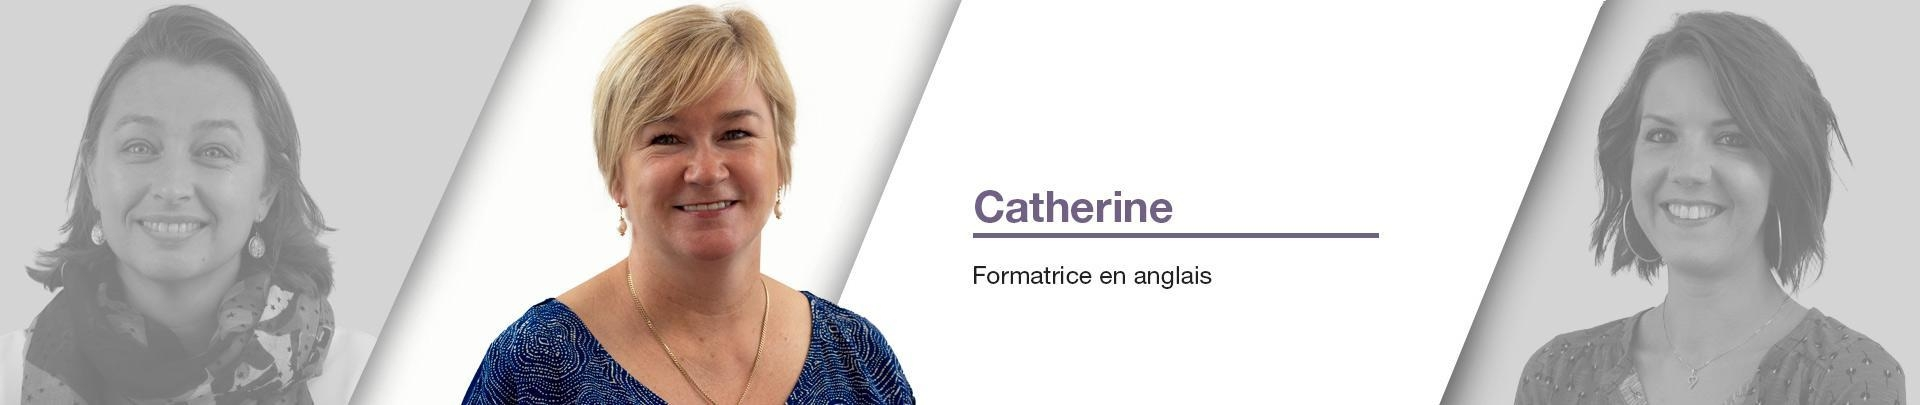 Catherine Zuber - Formatrice en Anglais